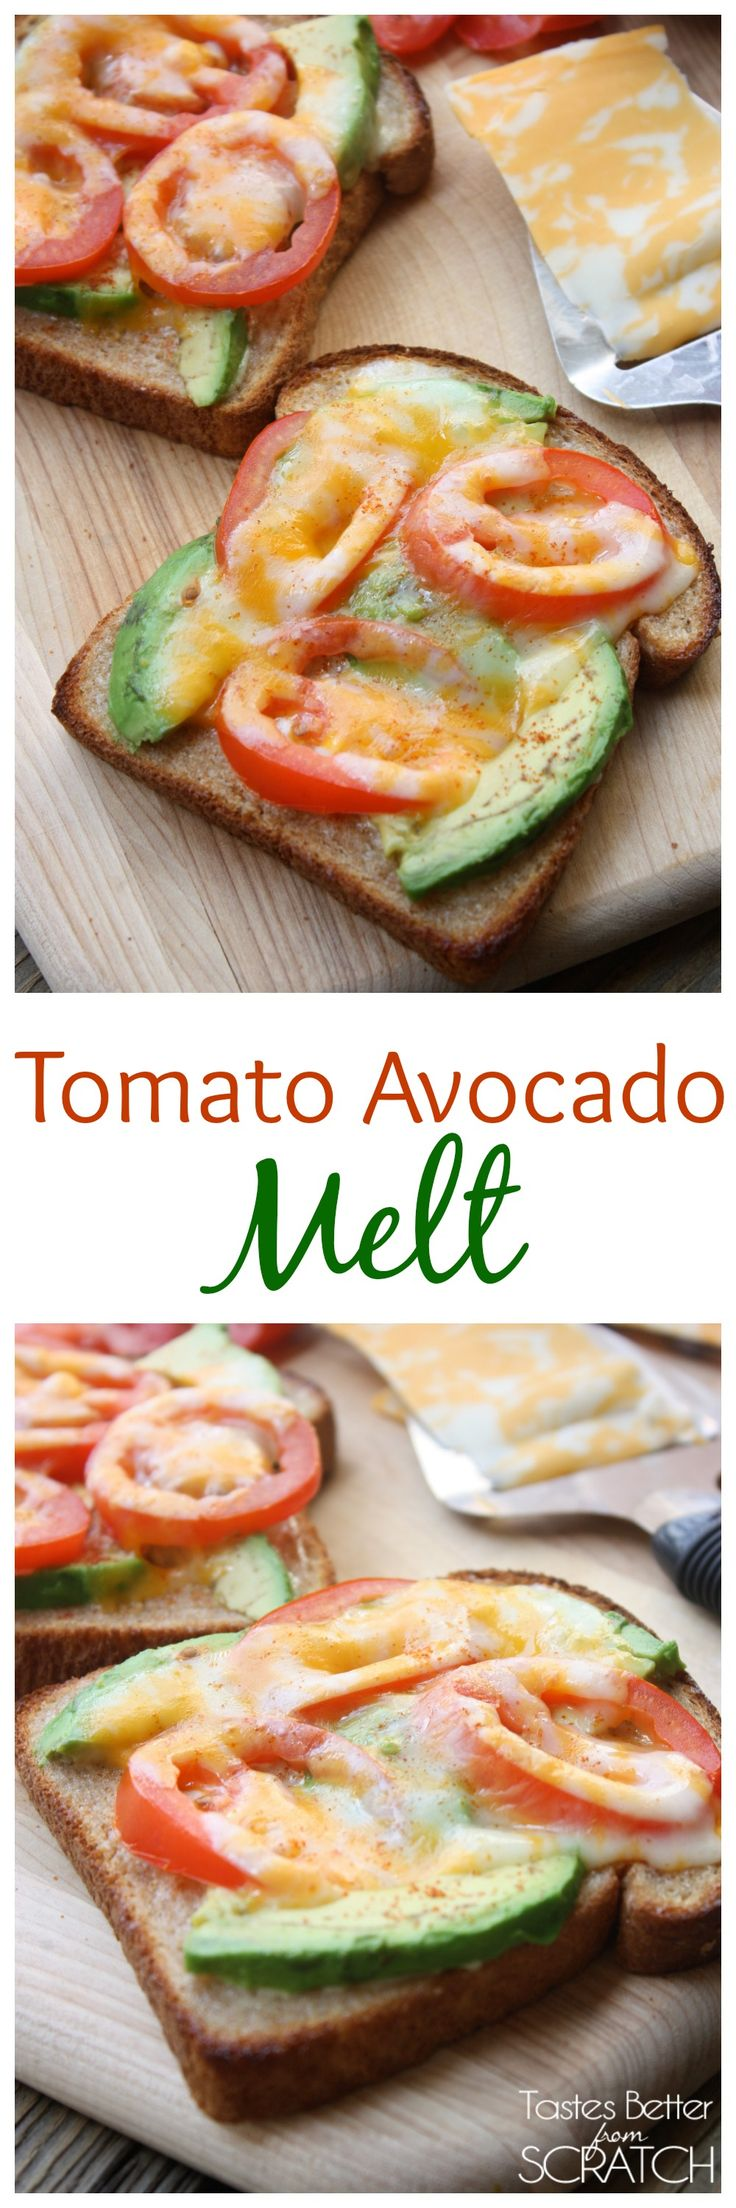 Tomato Avocado Melt